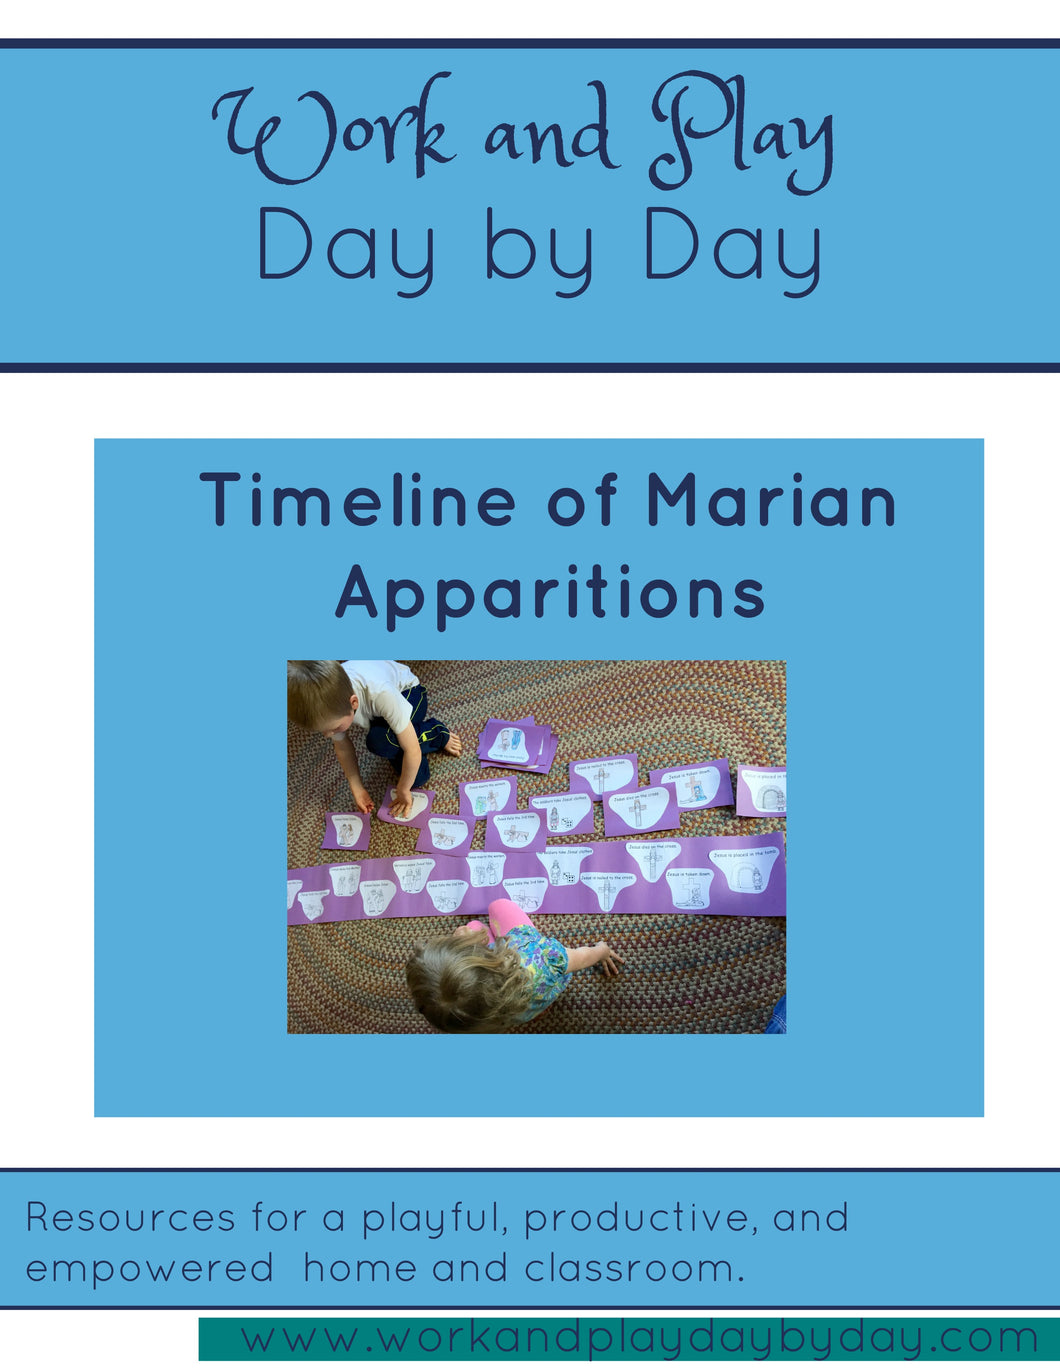 Montessori Style Timeline of Marian Apparitions